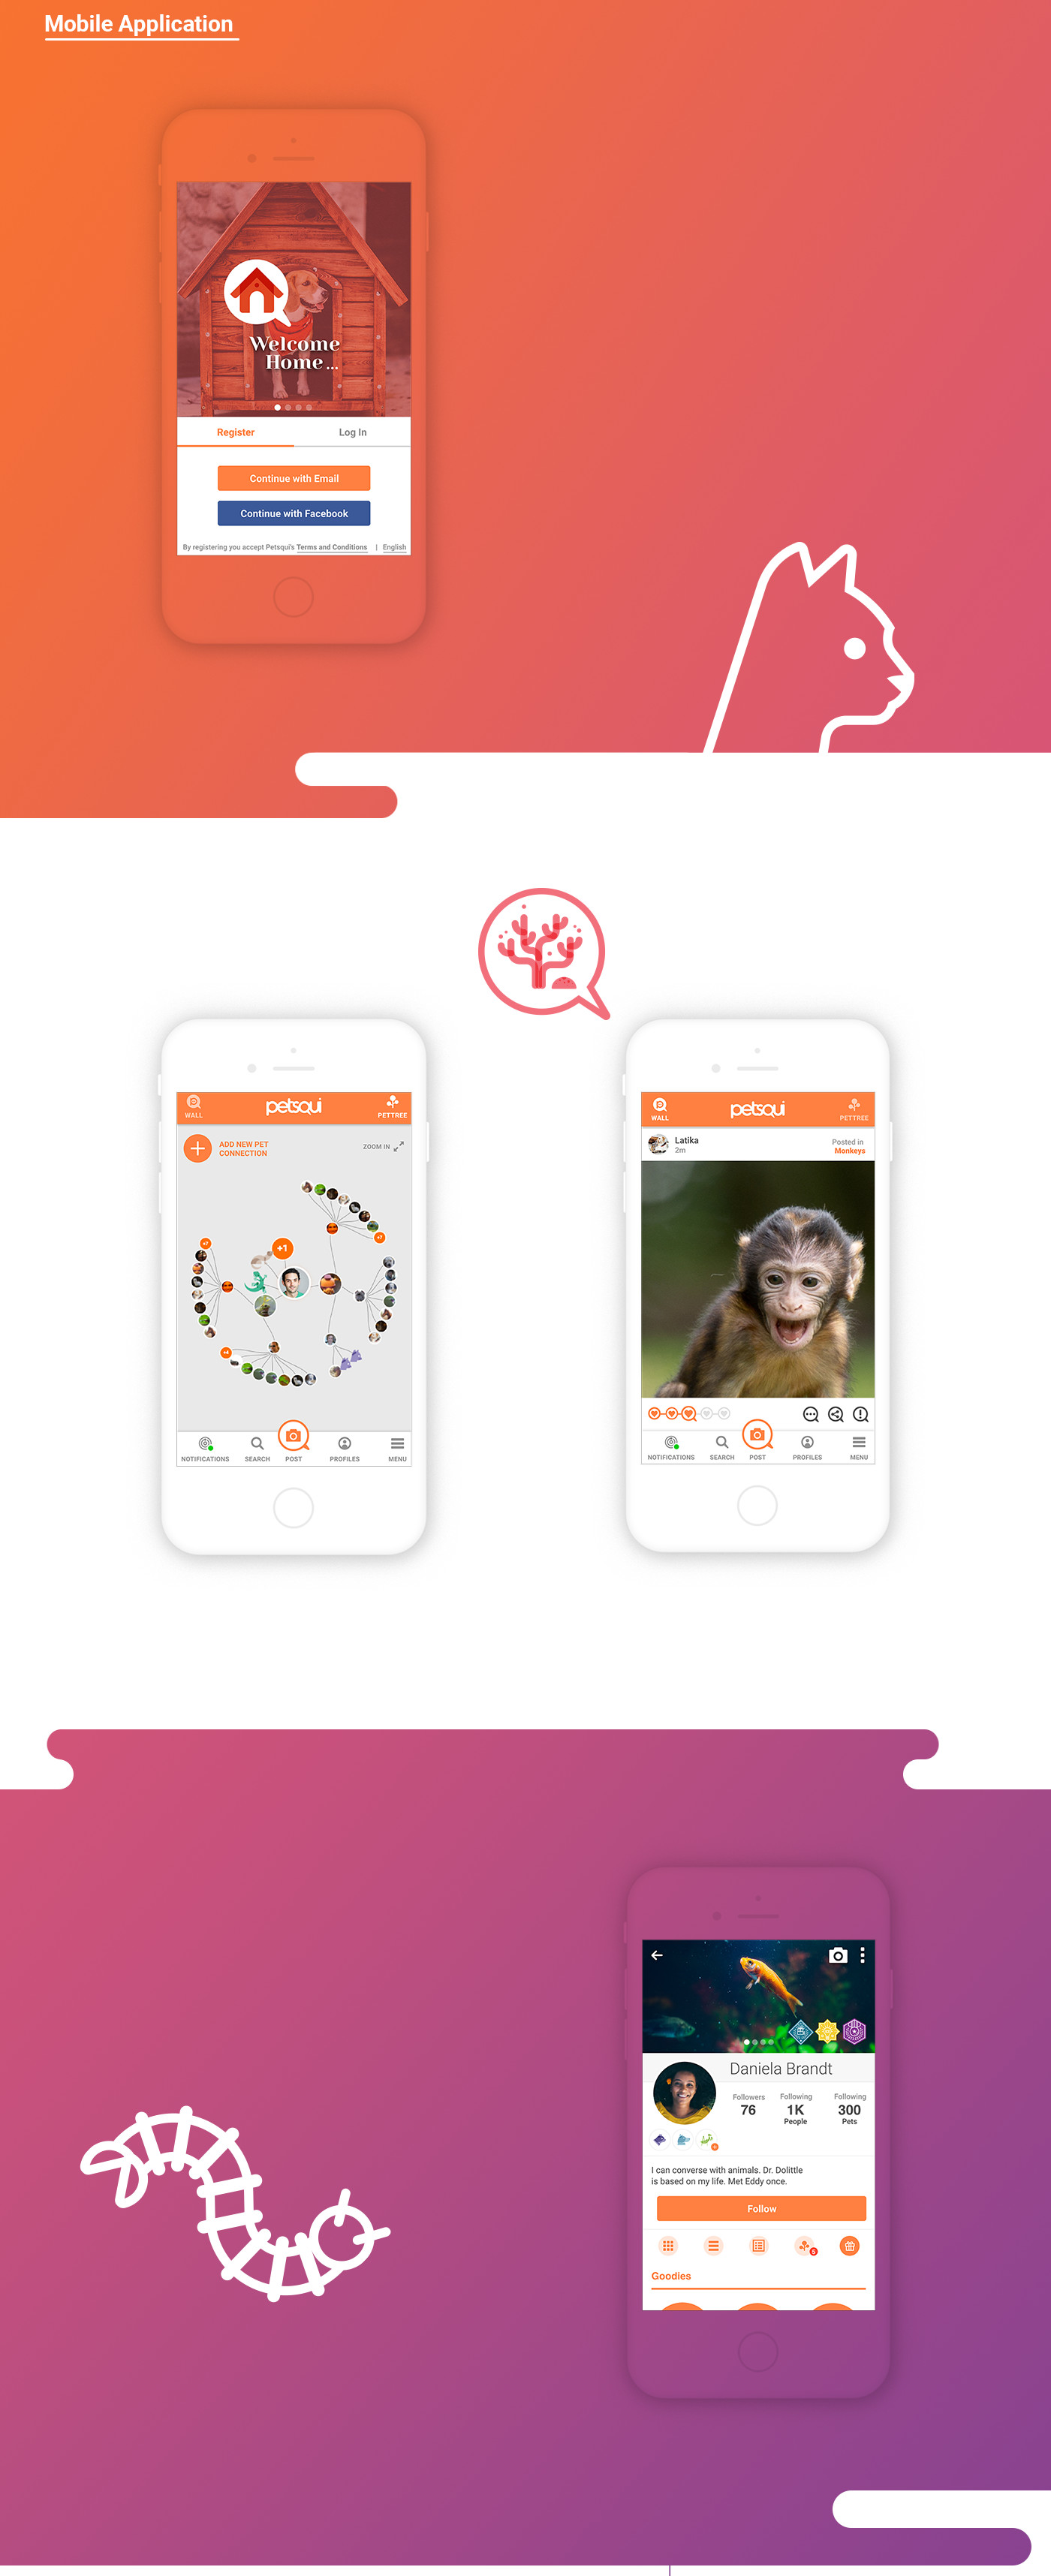 mobile application design for petsqui